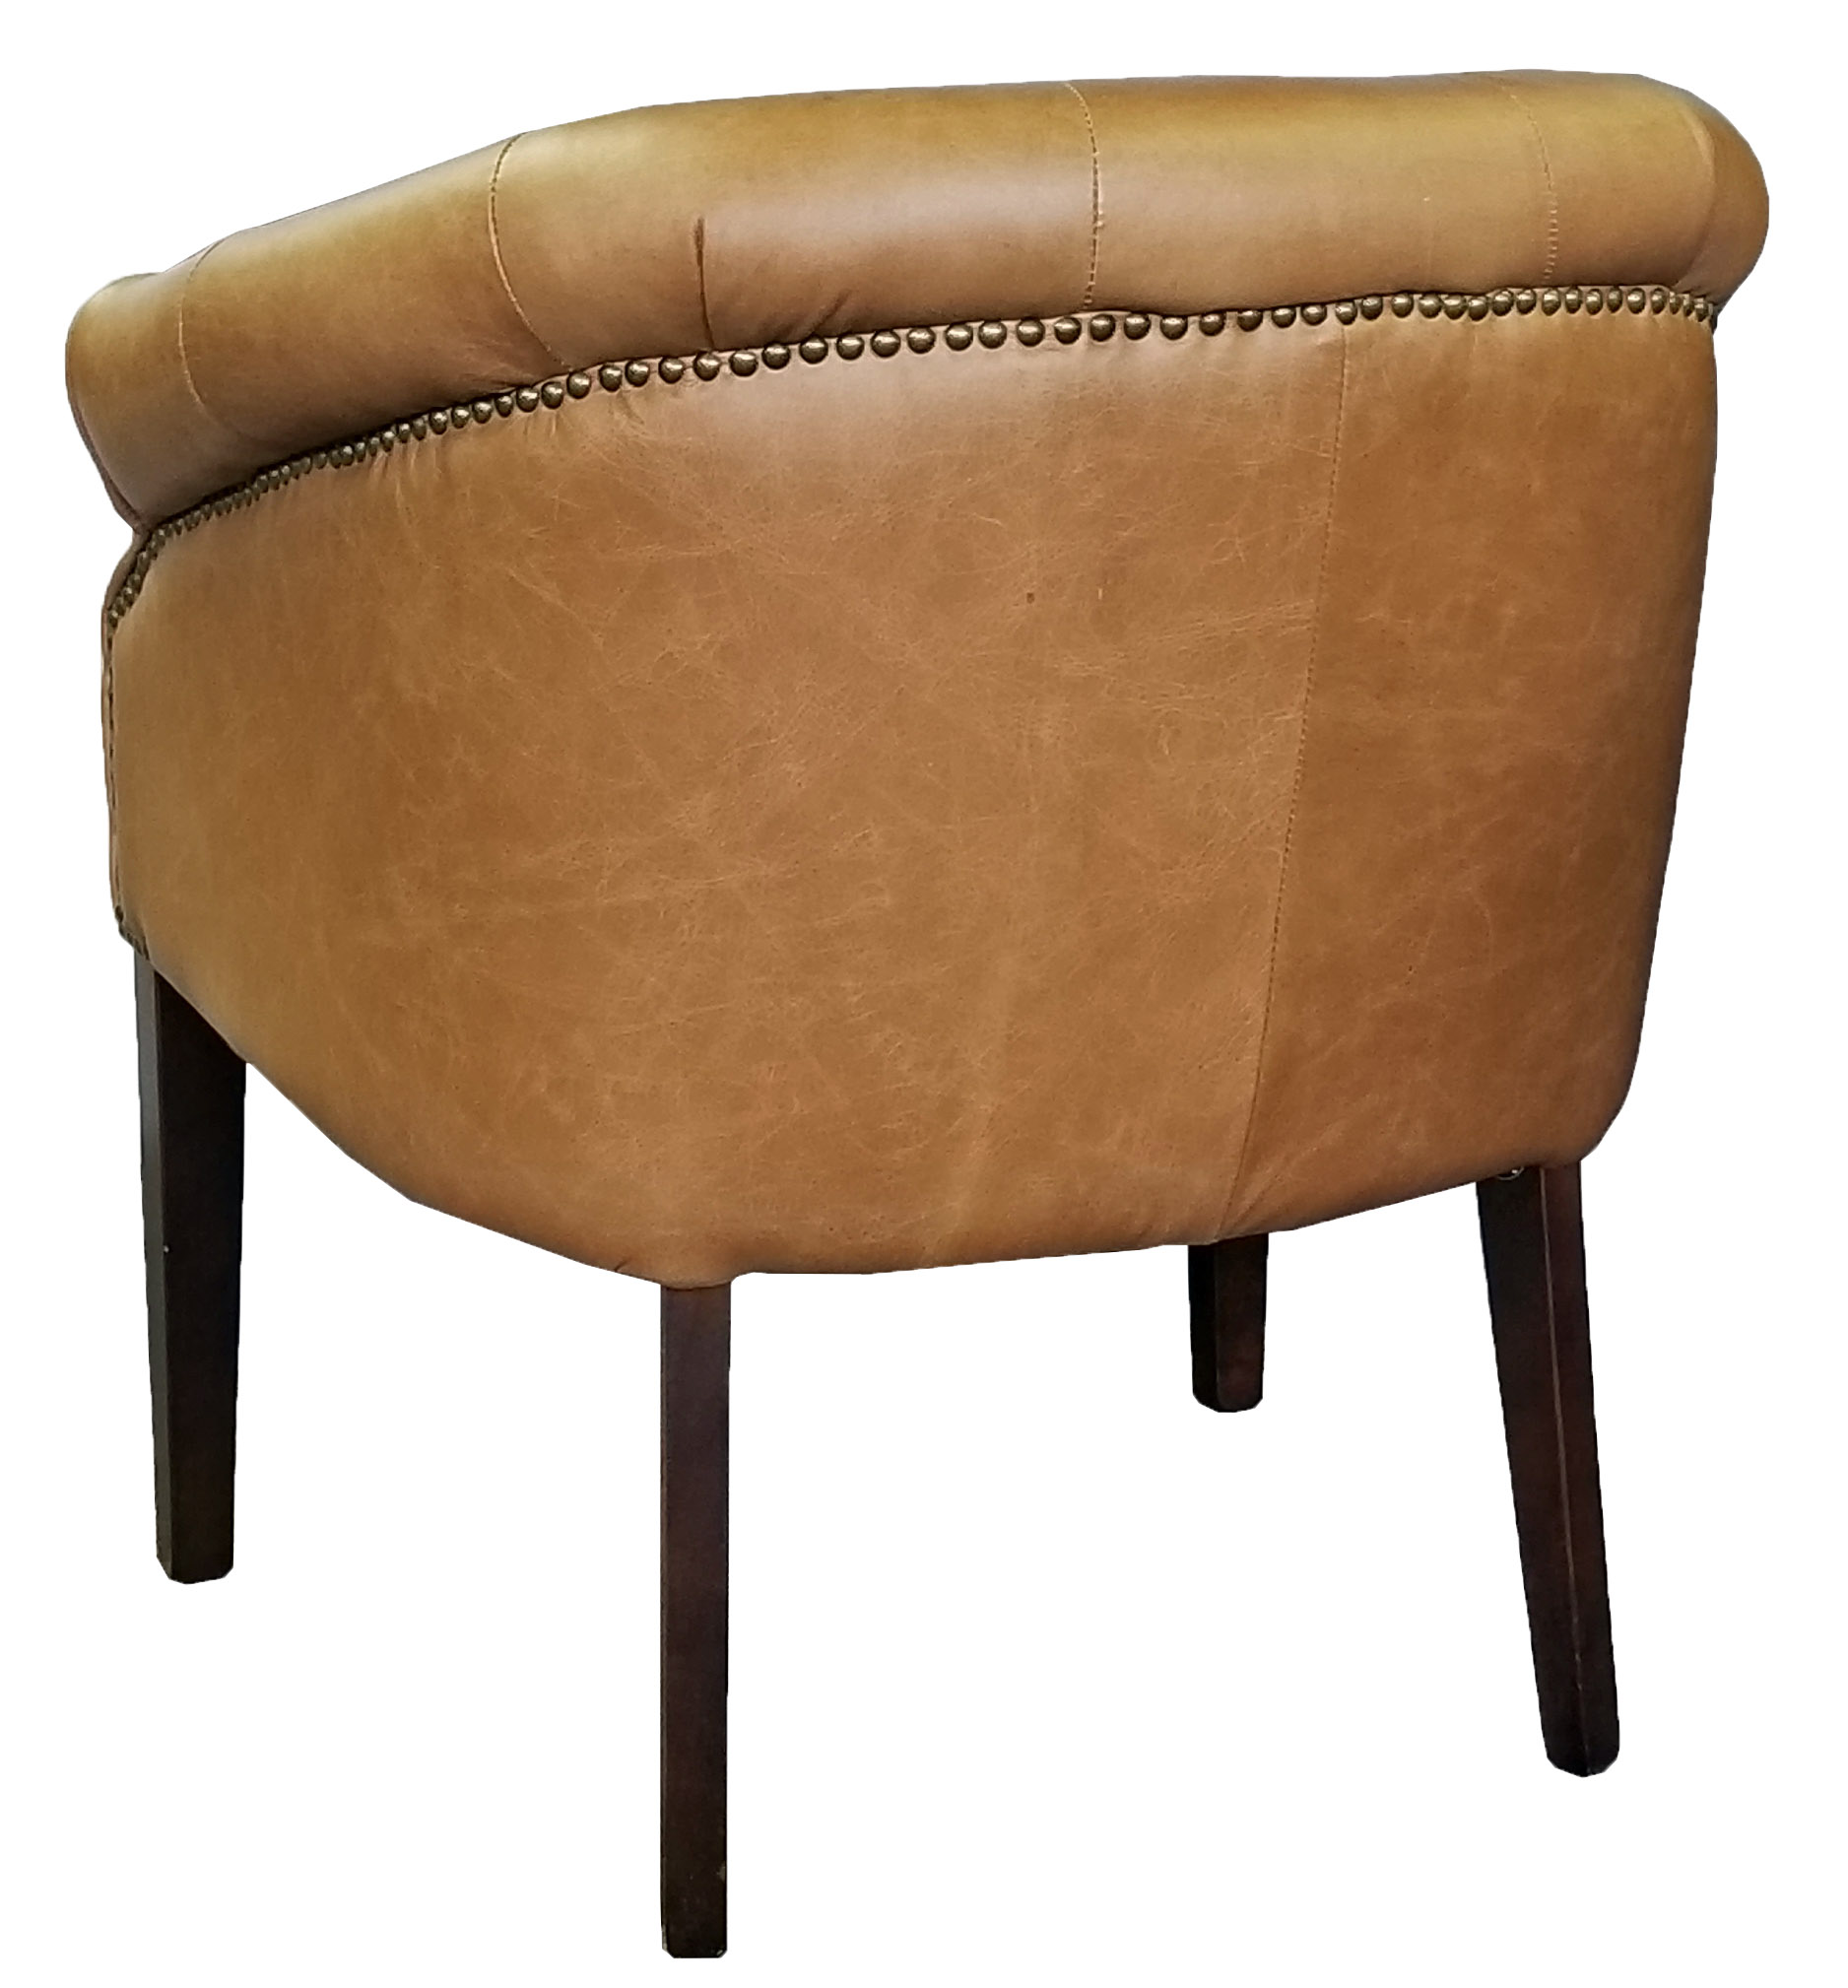 Restaurant Chairs Stools Amp Booths Leather Tub Chair In